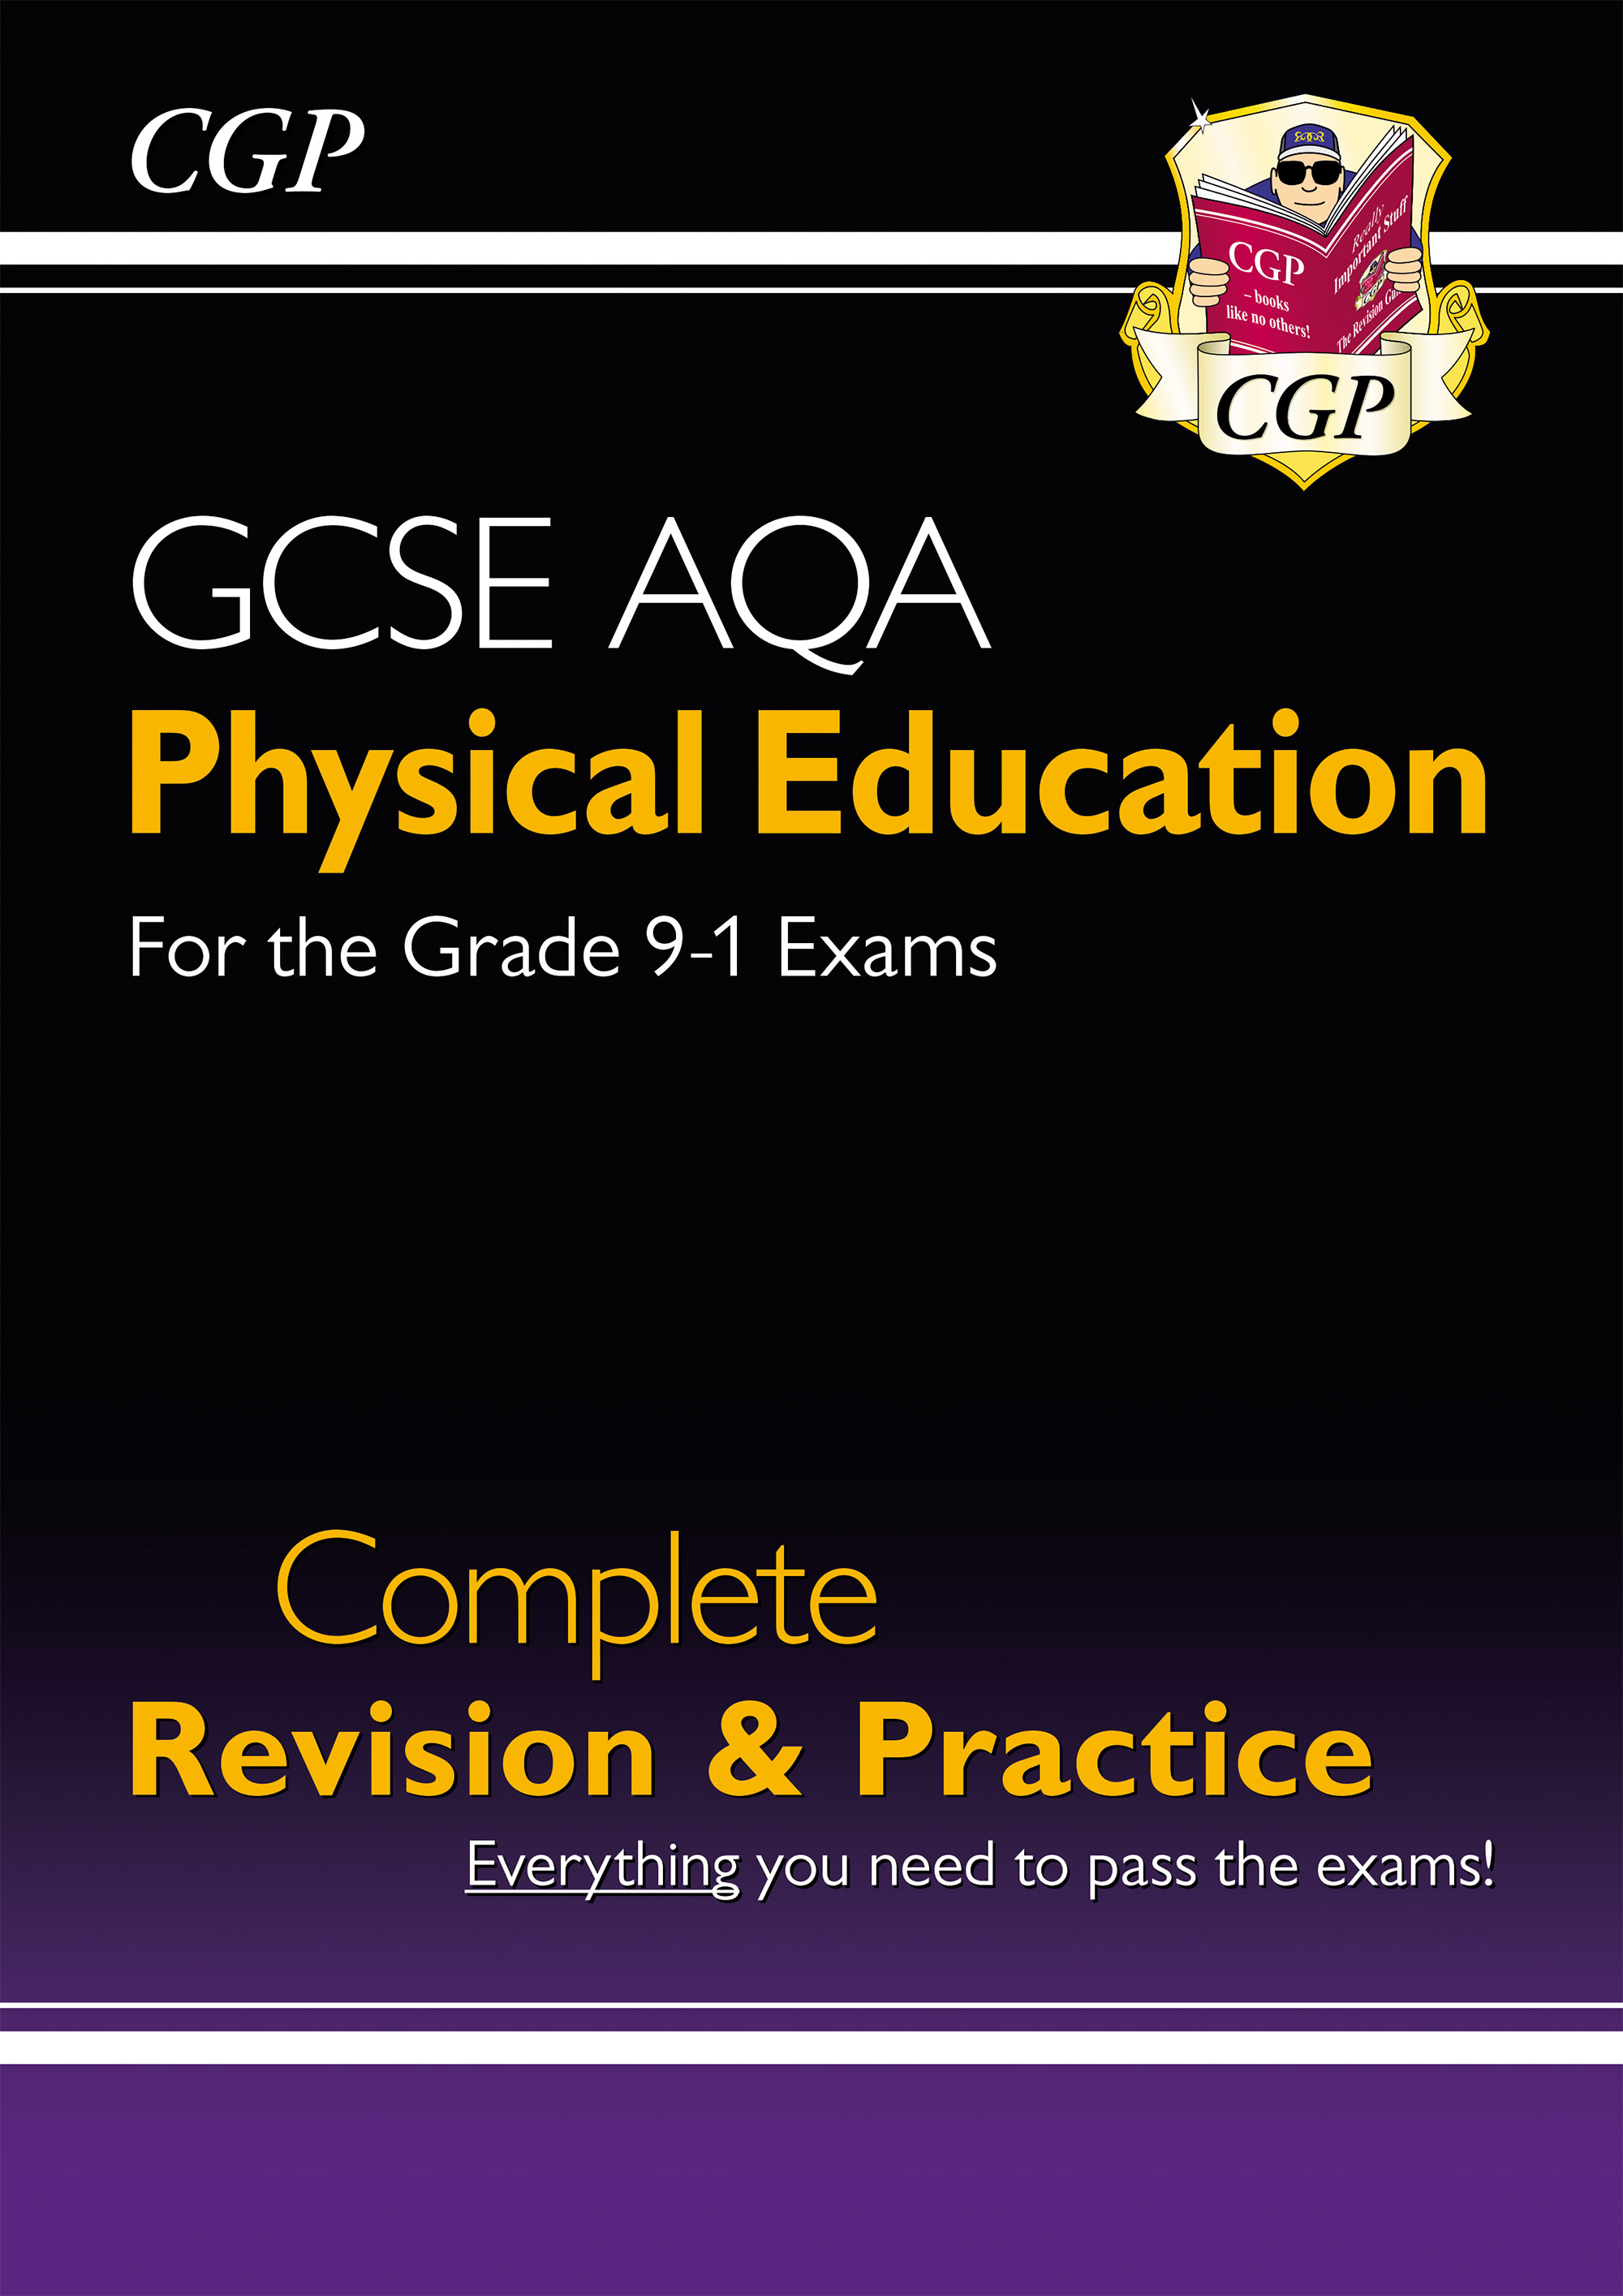 JAS41DK - New Grade 9-1 GCSE Physical Education AQA Complete Revision & Practice